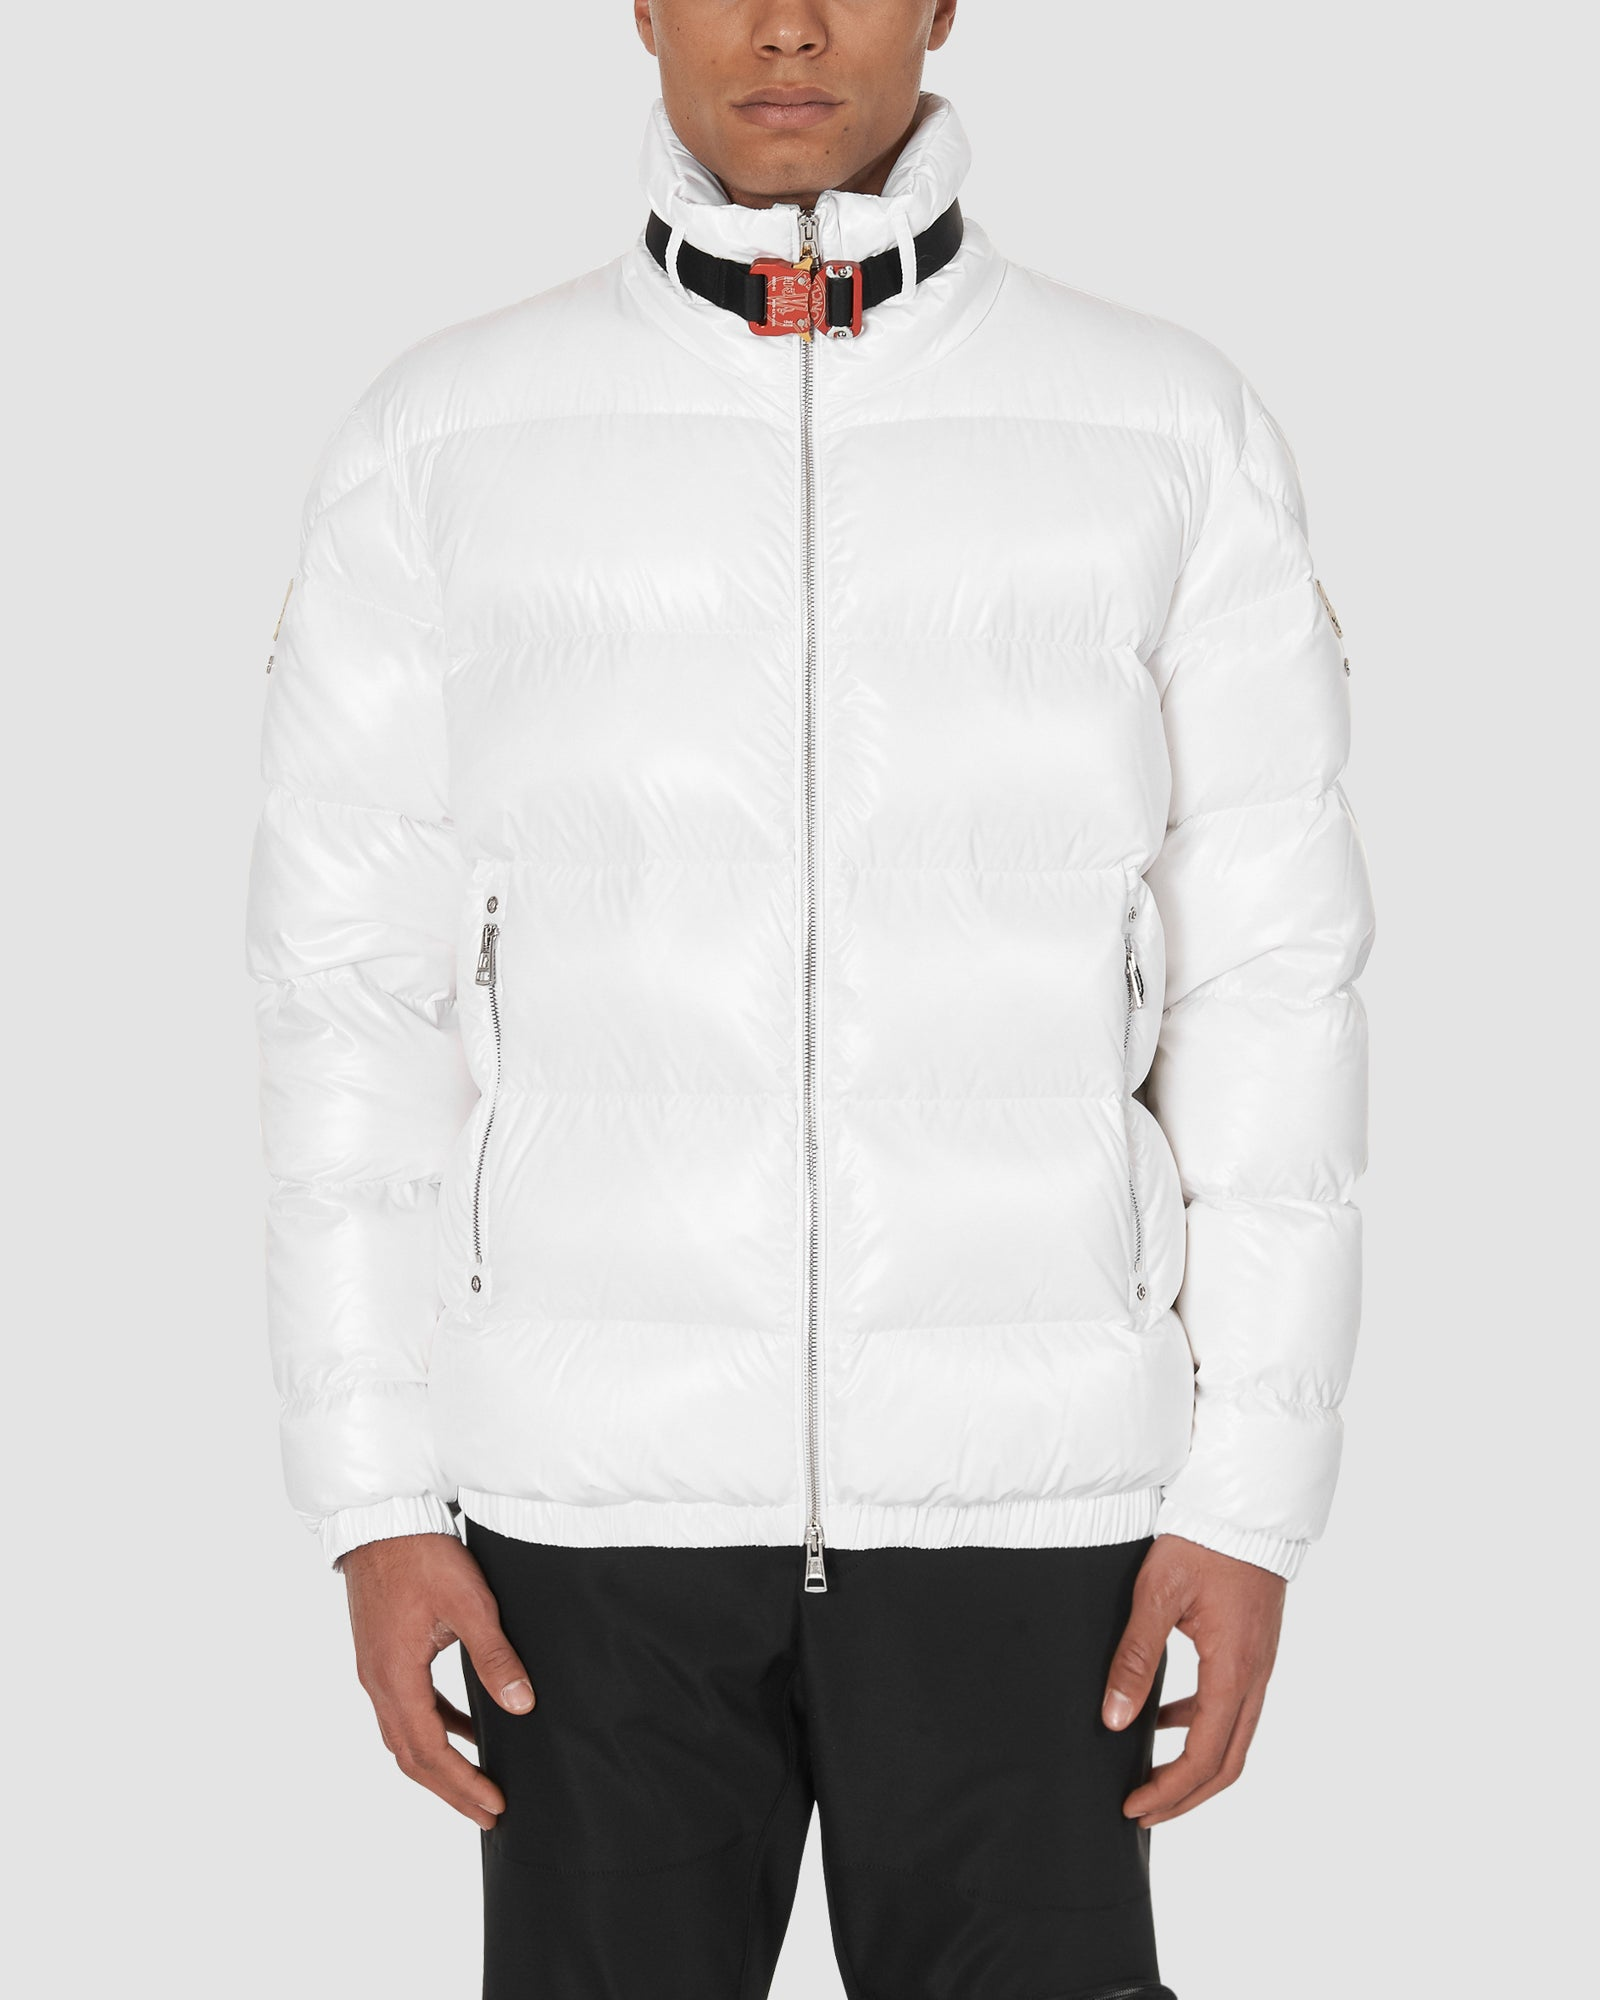 1017 ALYX 9SM | MONCLER SIRUS JACKET | Outerwear | BLACK W RED BUCKLE, Google Shopping, Man, Moncler, OUTERWEAR, S20, UNISEX